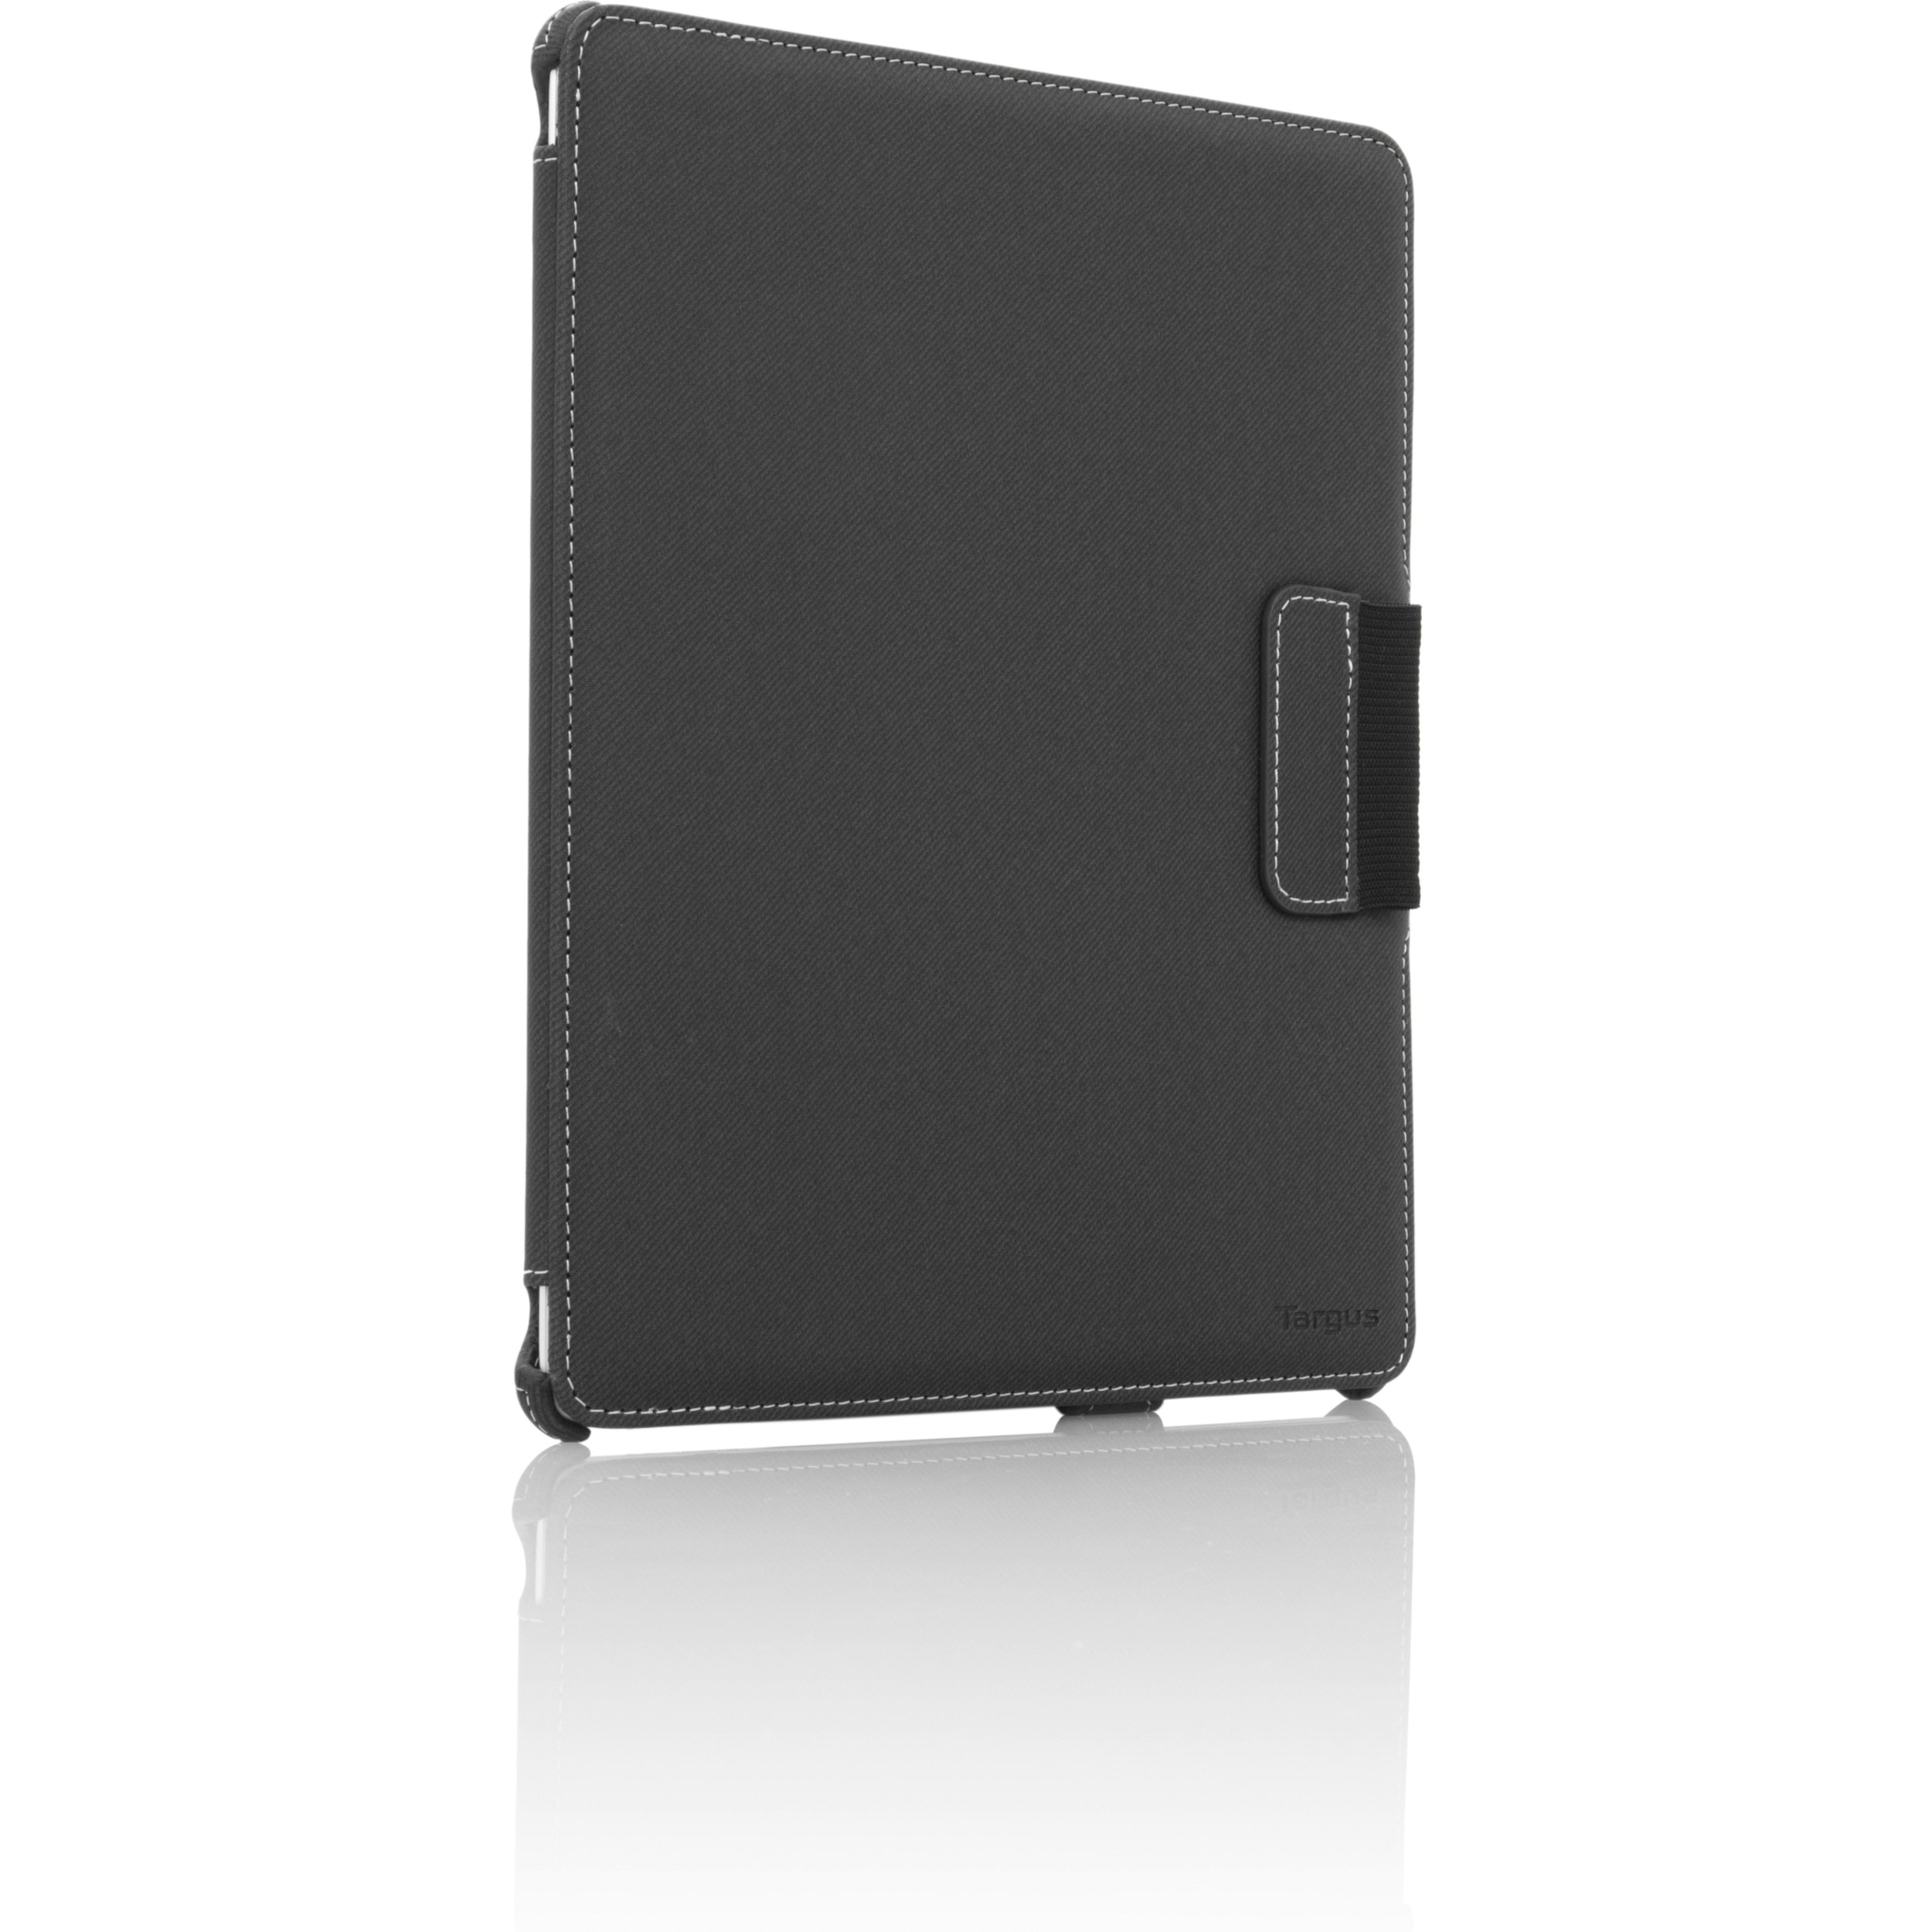 Targus Vuscape THZ15702US Carrying Case for iPad - Gray